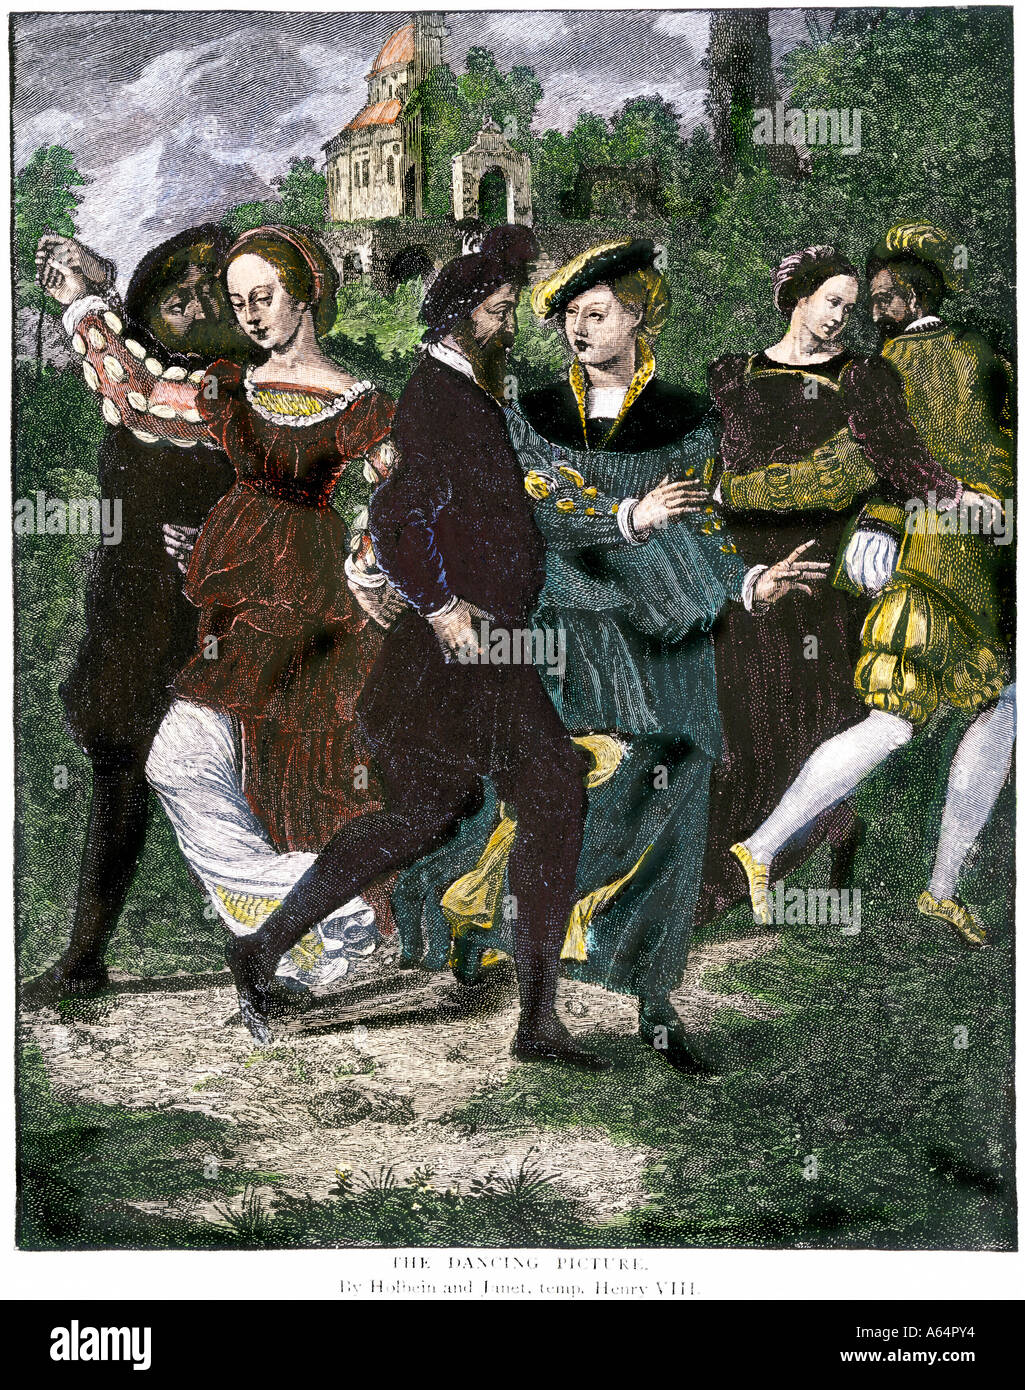 Couples dancing in Tudor England 1500s. Hand-colored woodcut - Stock Image